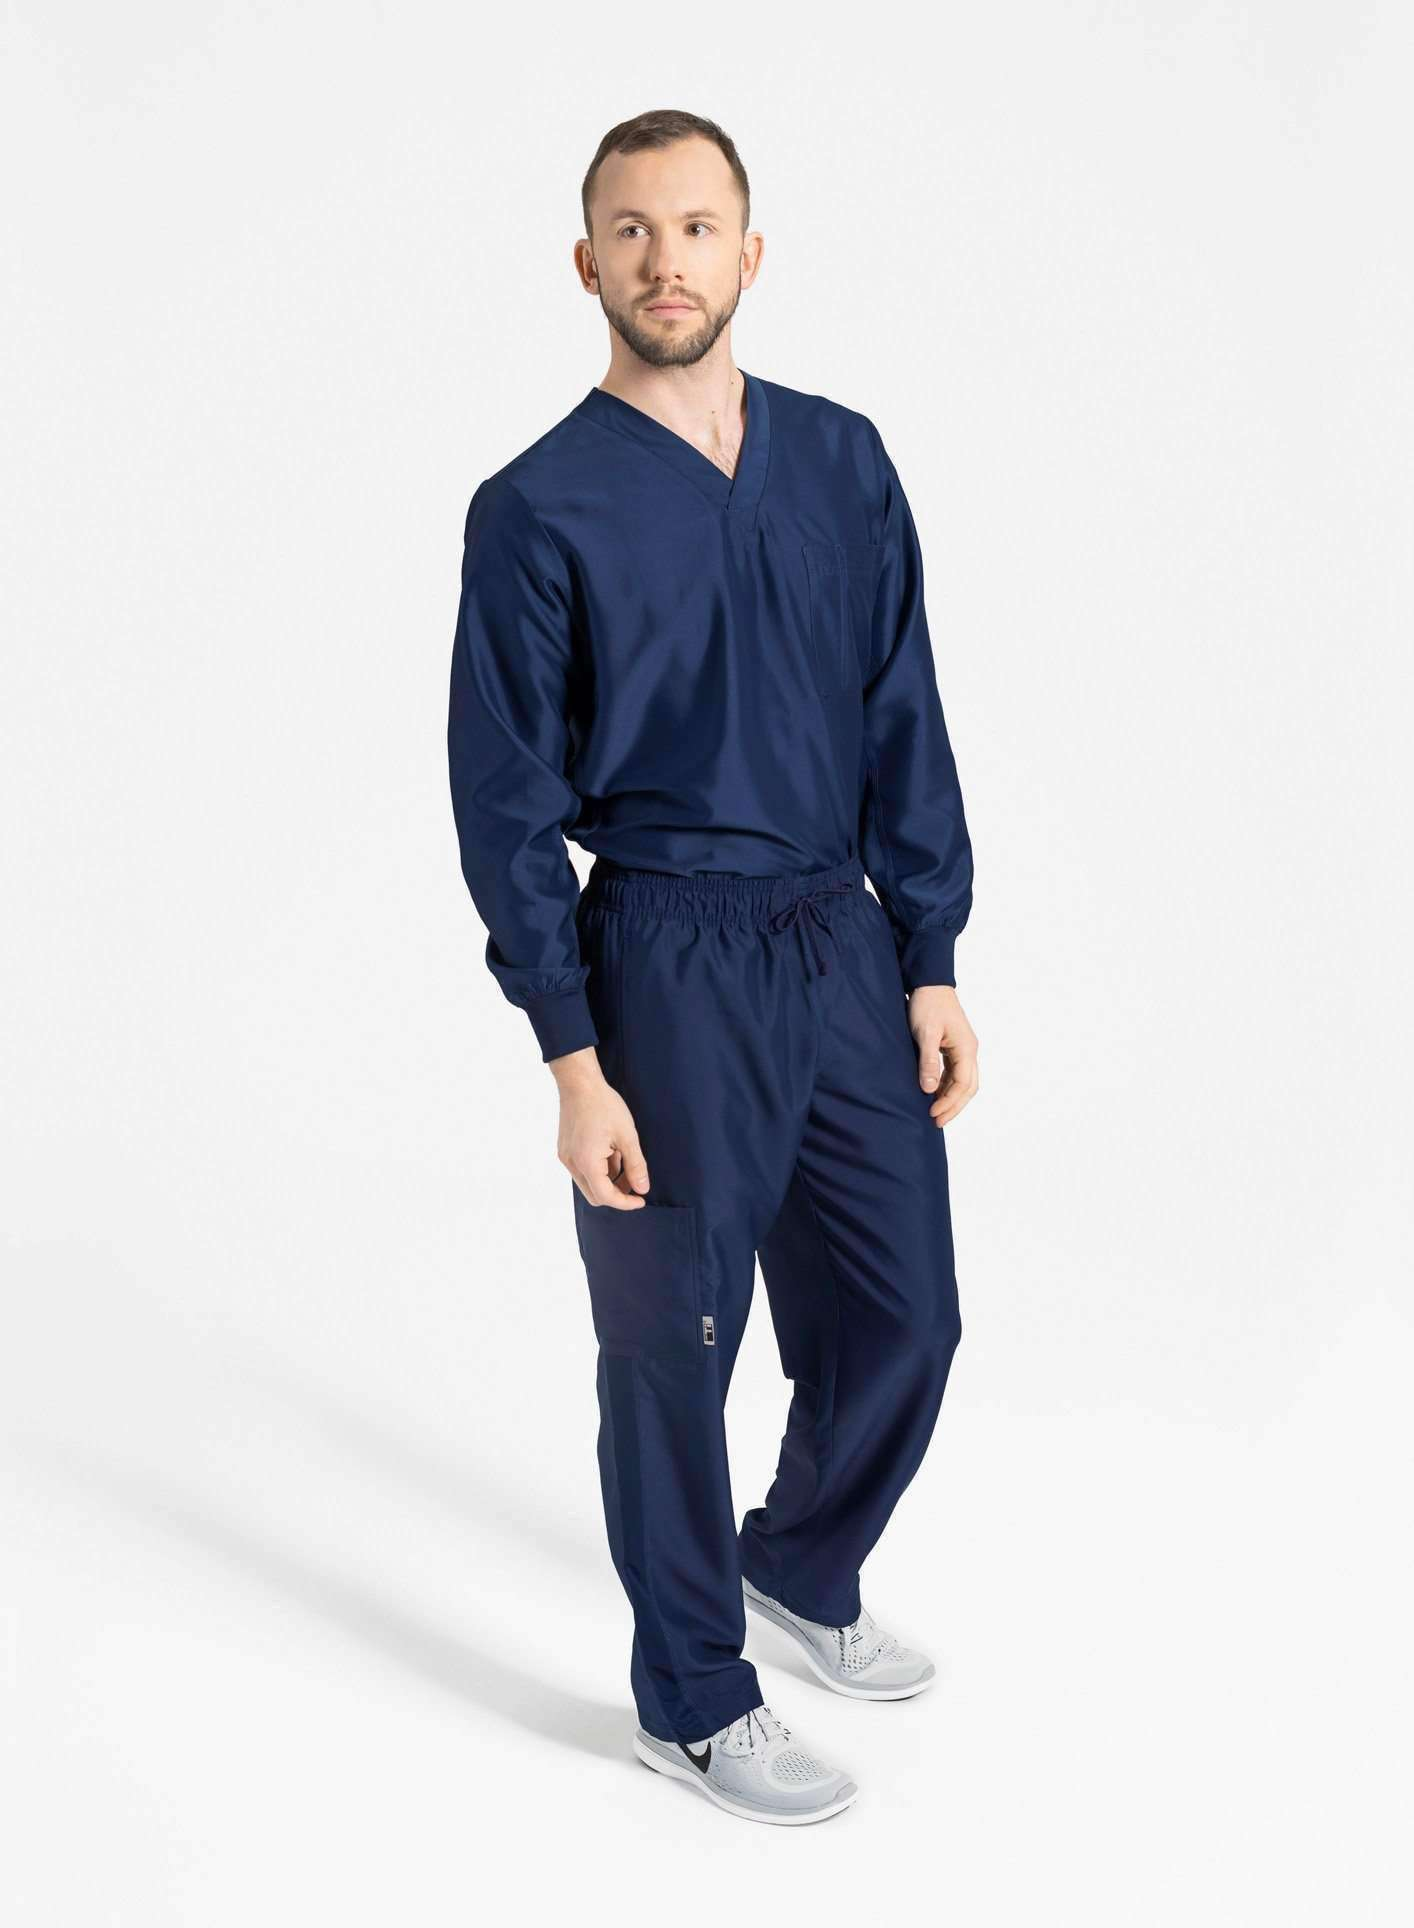 mens Elements cargo pocket relaxed fit scrub pants and top  navy blue